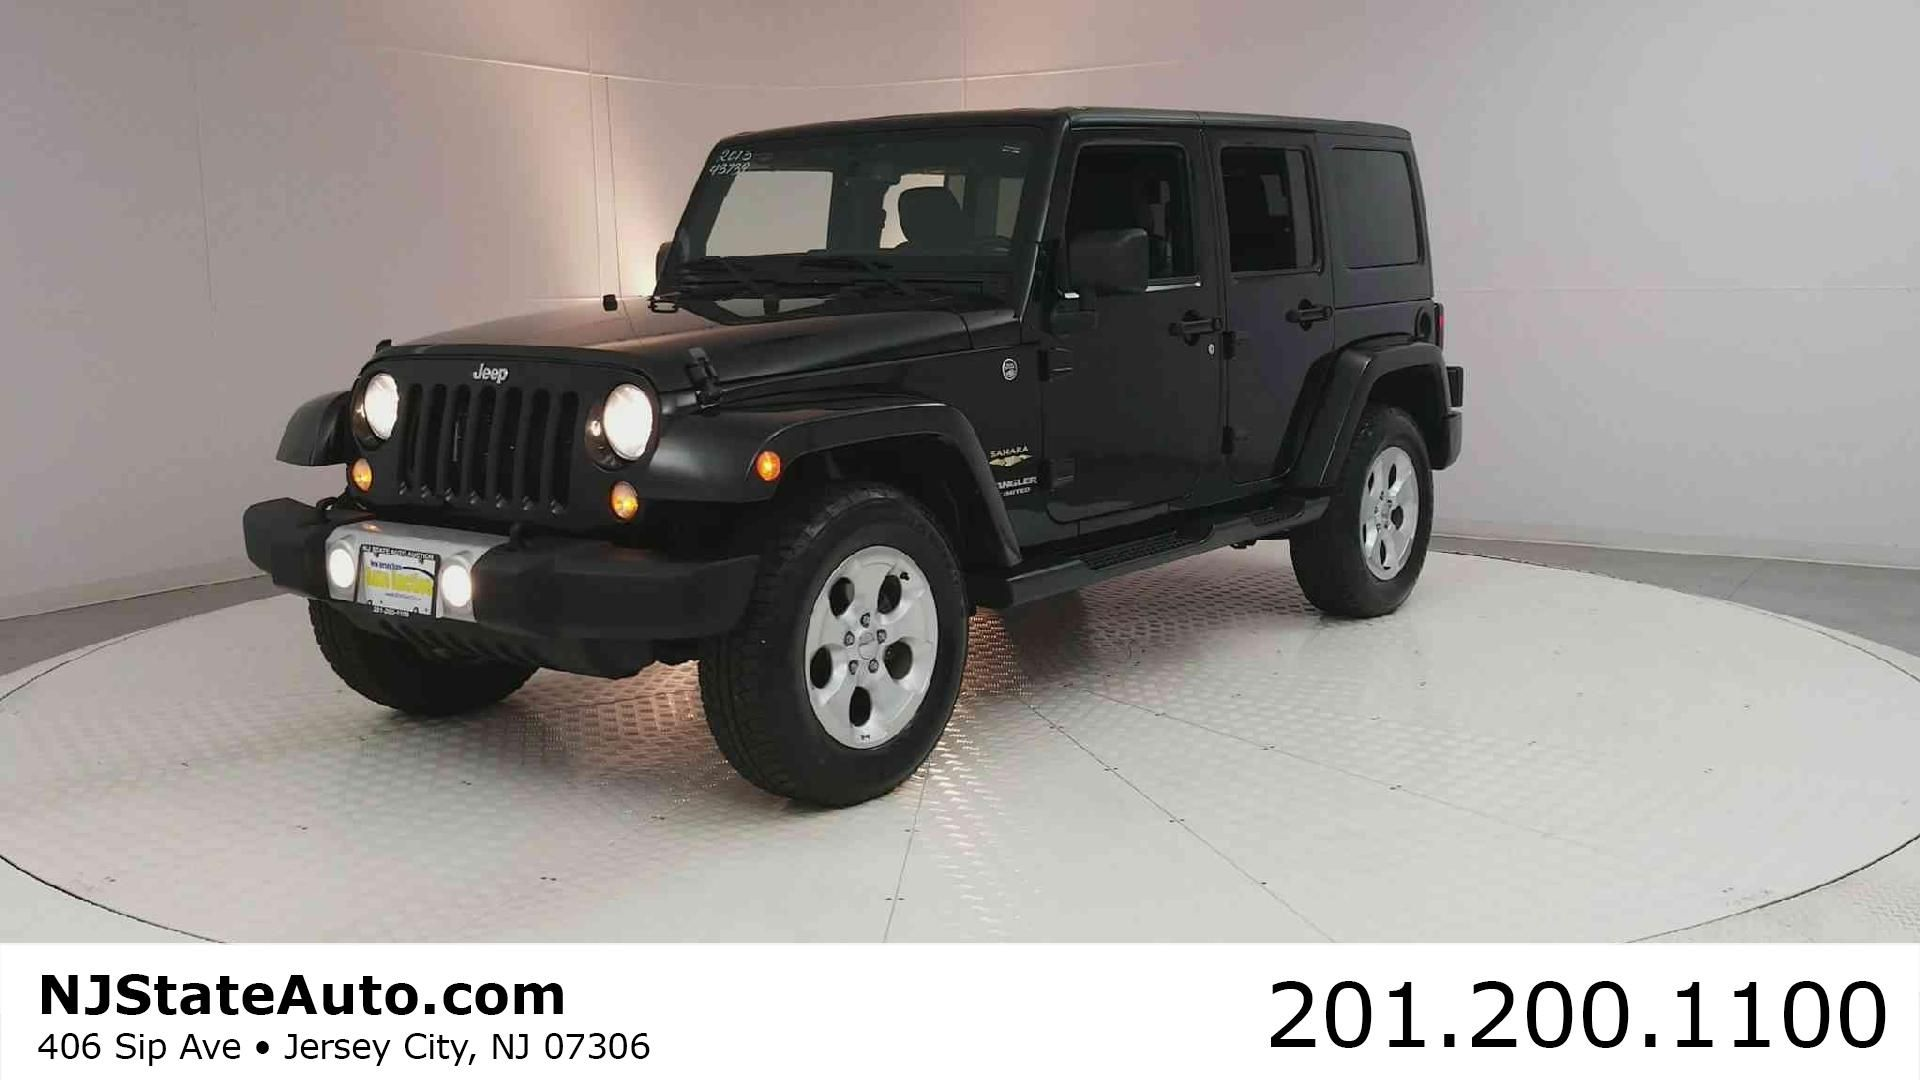 2015 Jeep Wrangler Unlimited 4wd 4dr Sahara Jersey City Nj 2015 Jeep Wrangler Unlimited Jeep Wrangler Unlimited Jersey City